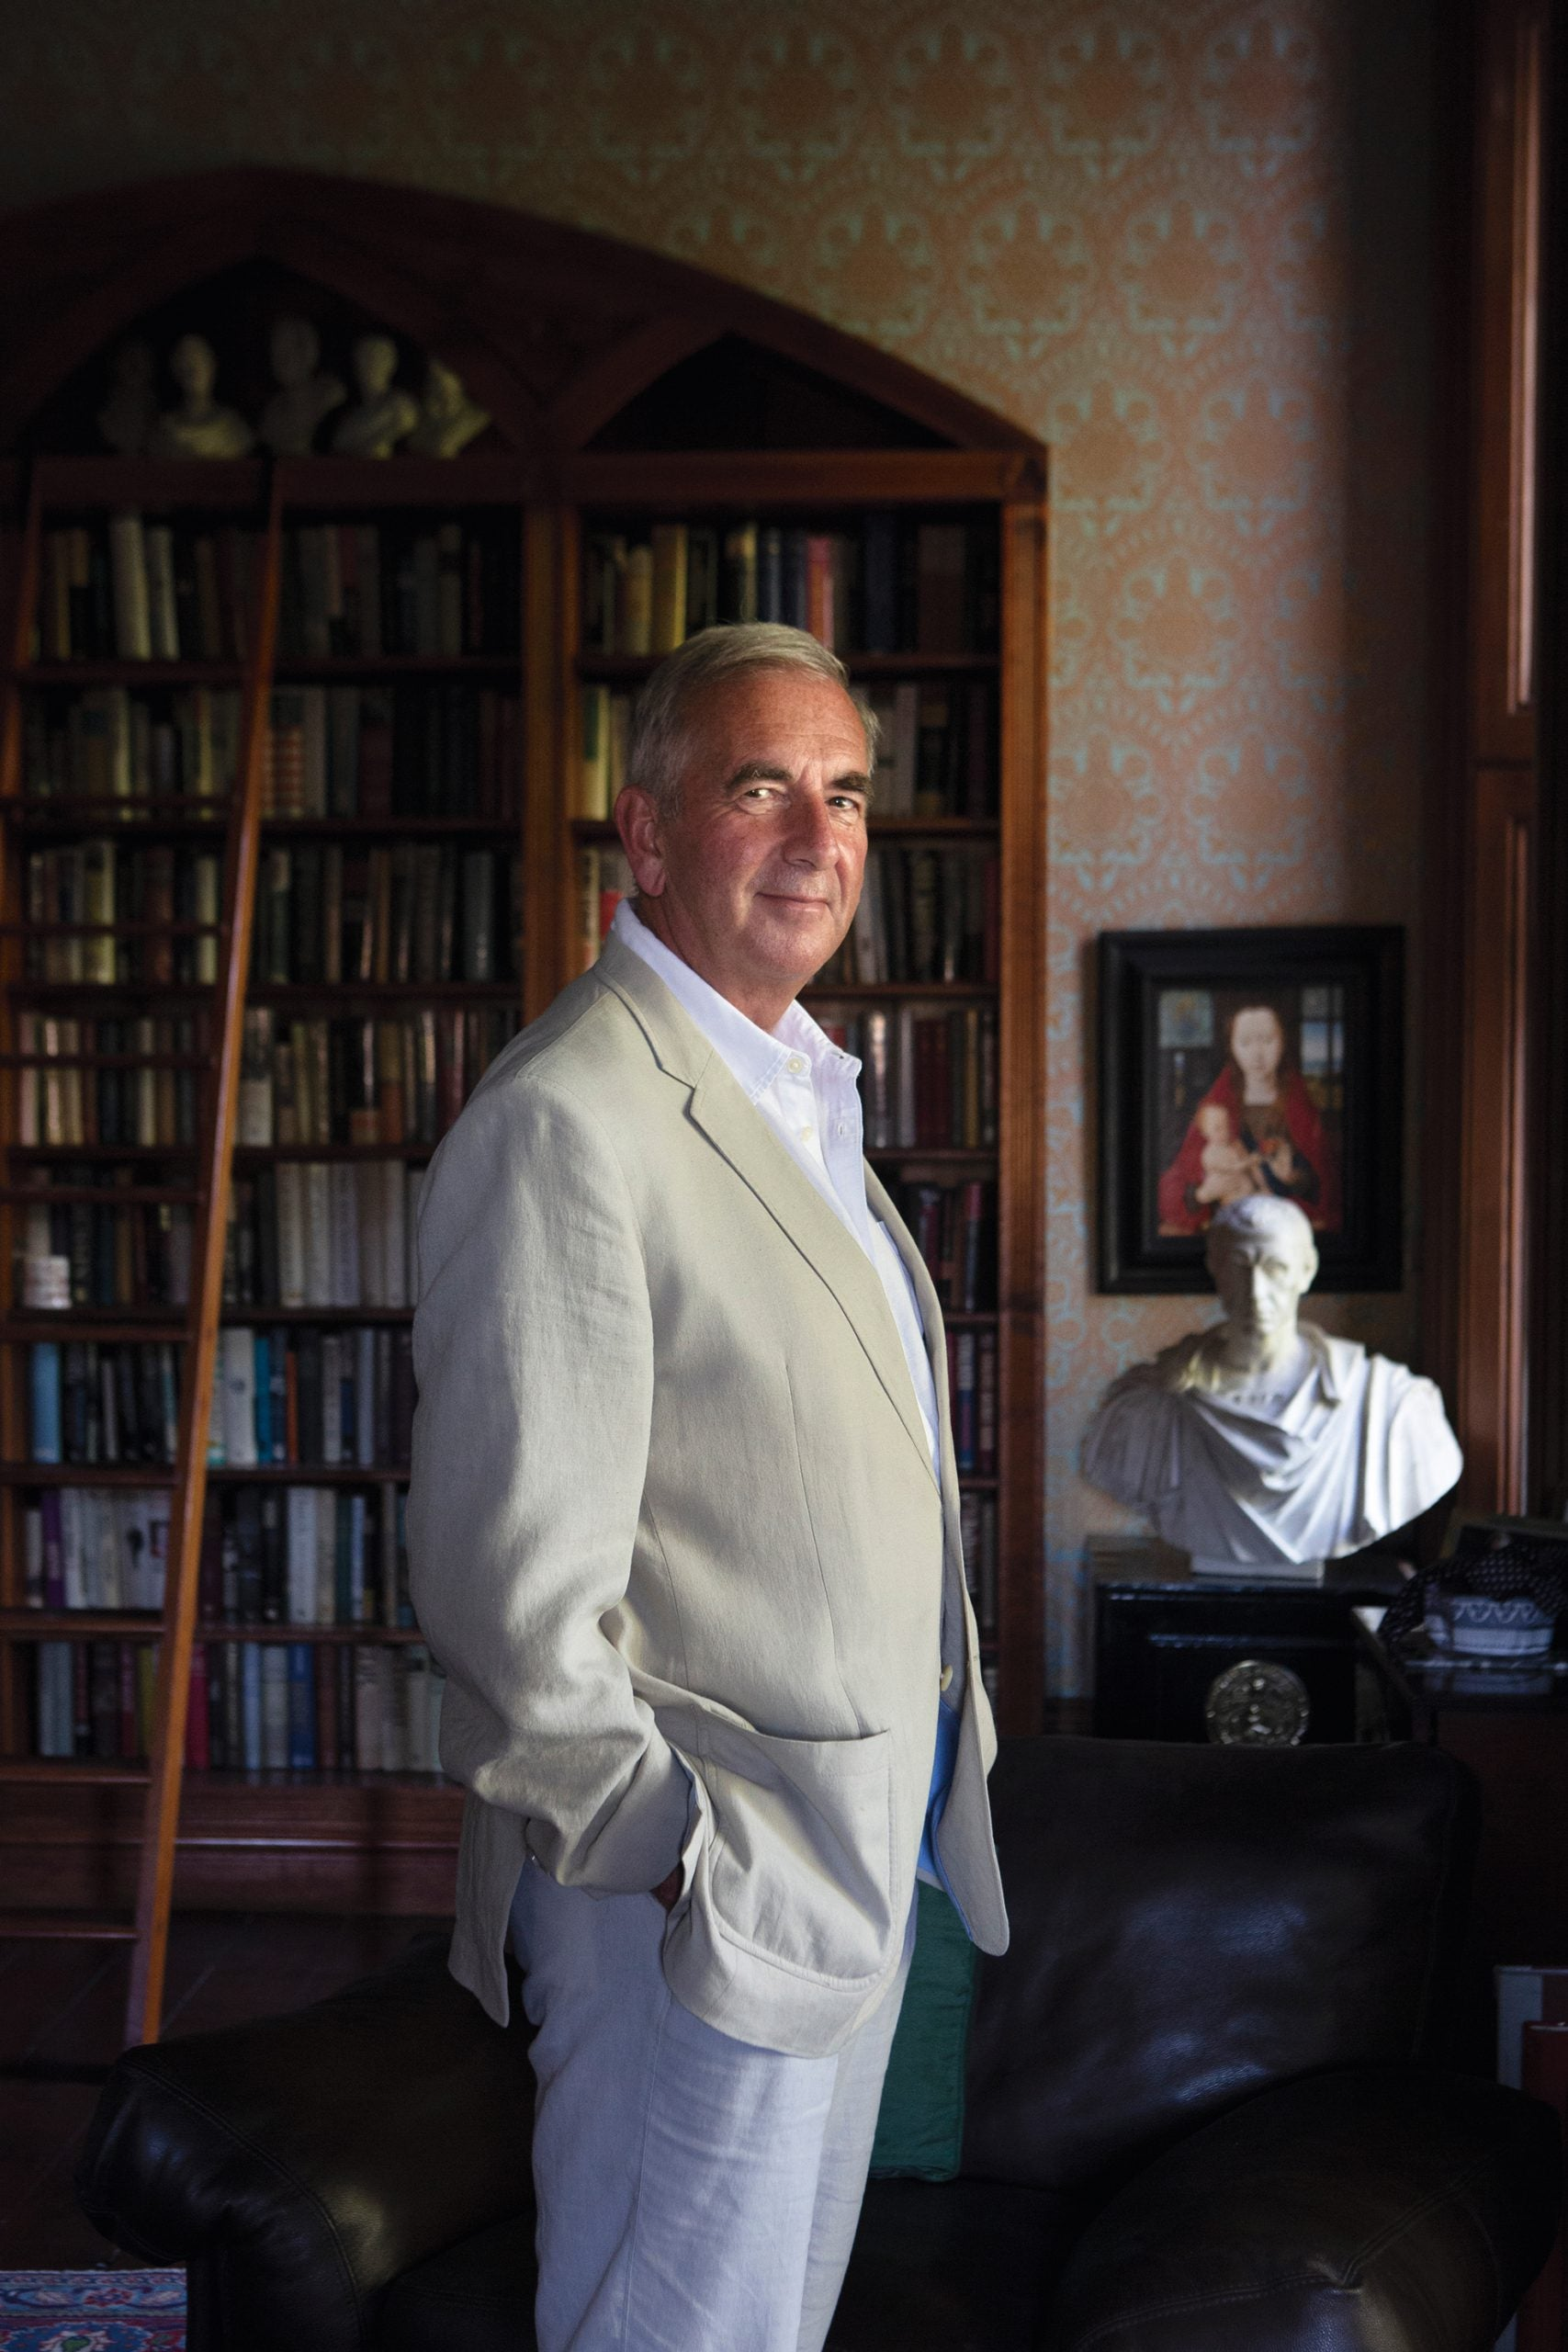 """""""We have moved into the age of irrationality"""": Robert Harris on a world being driven apart"""